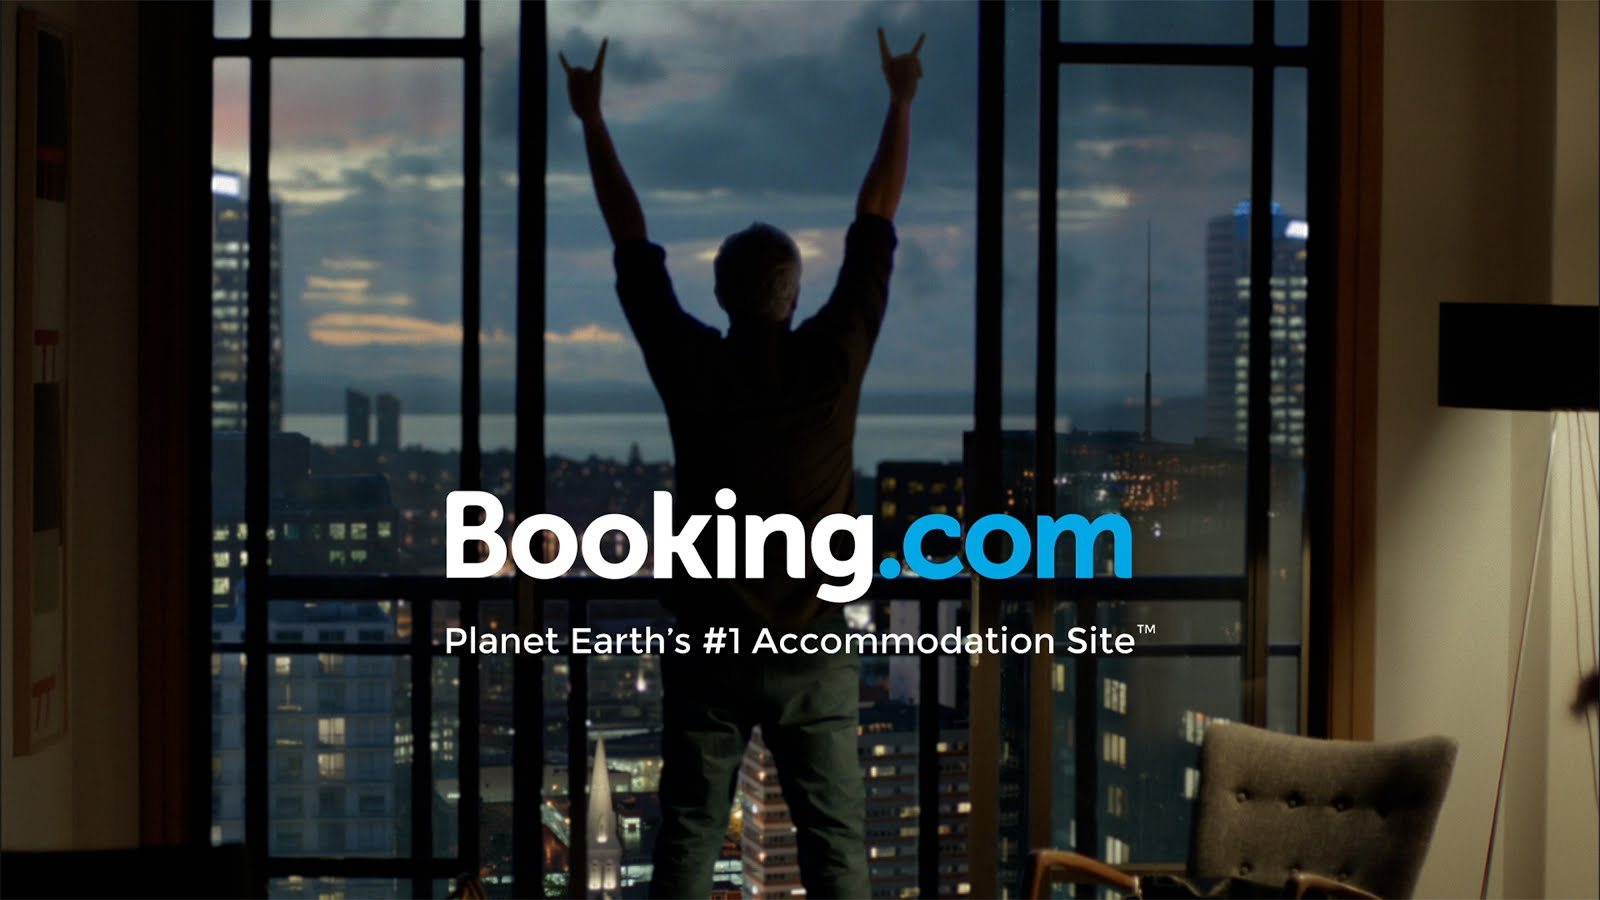 Book via Booking.com